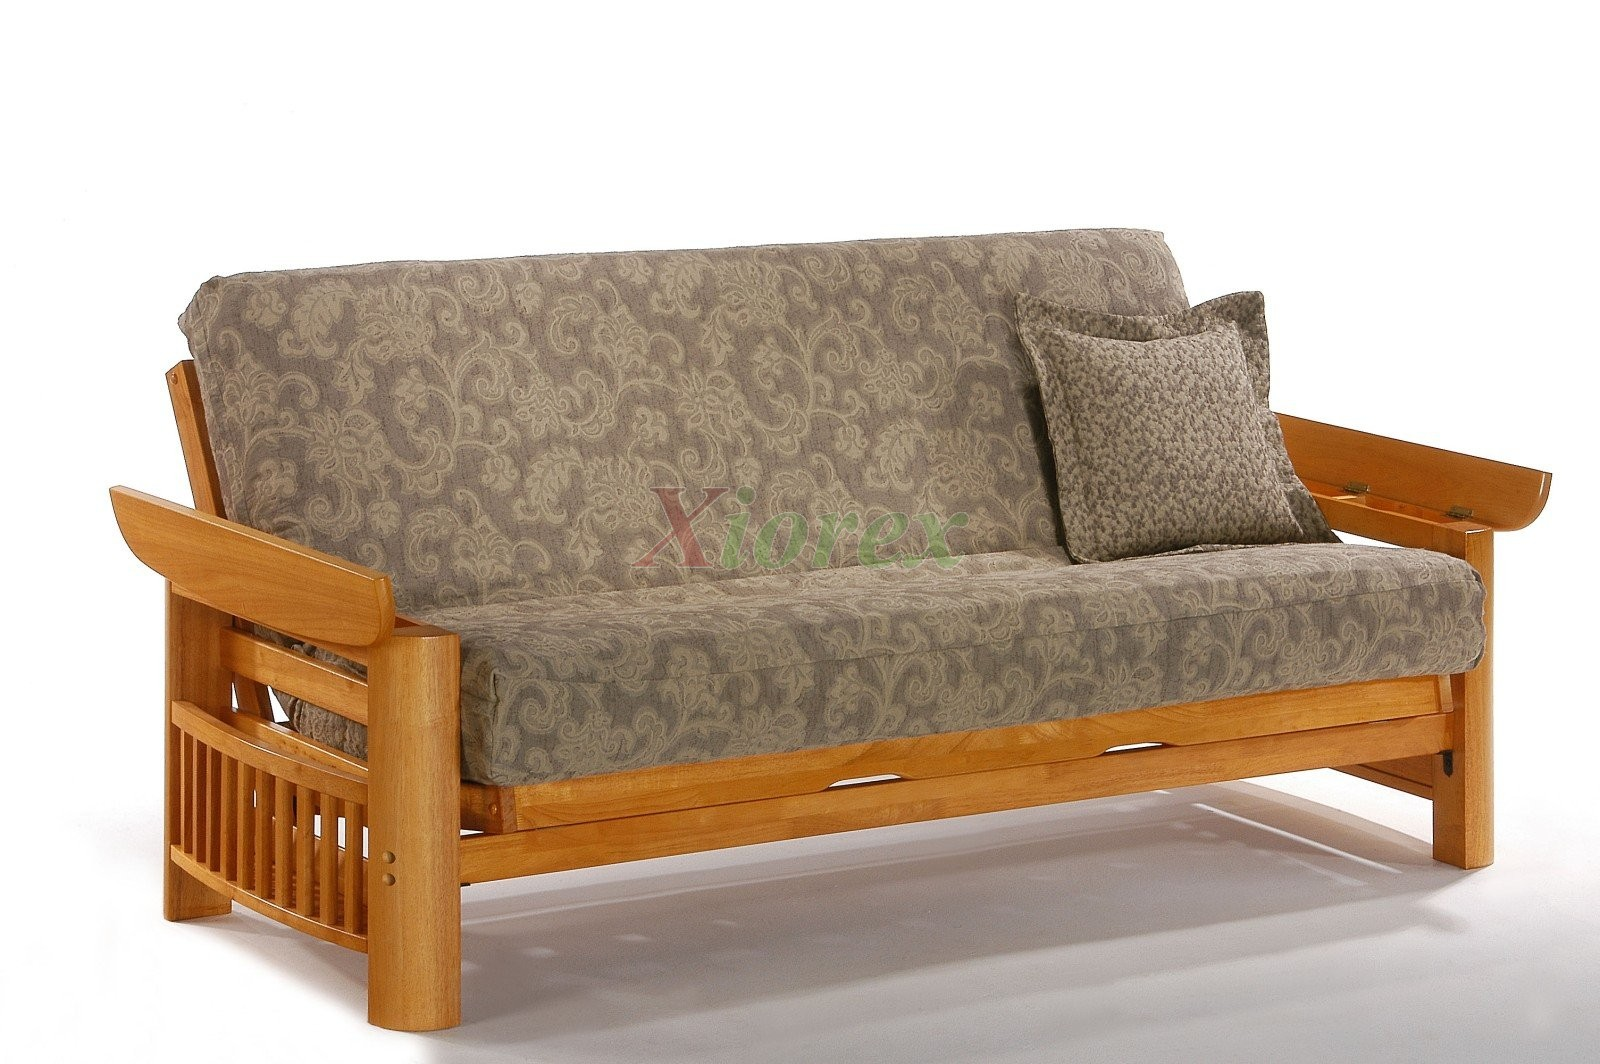 ... Futon Sofabed Night And Day Portofino Futon Honey Oak | Xiorex ...